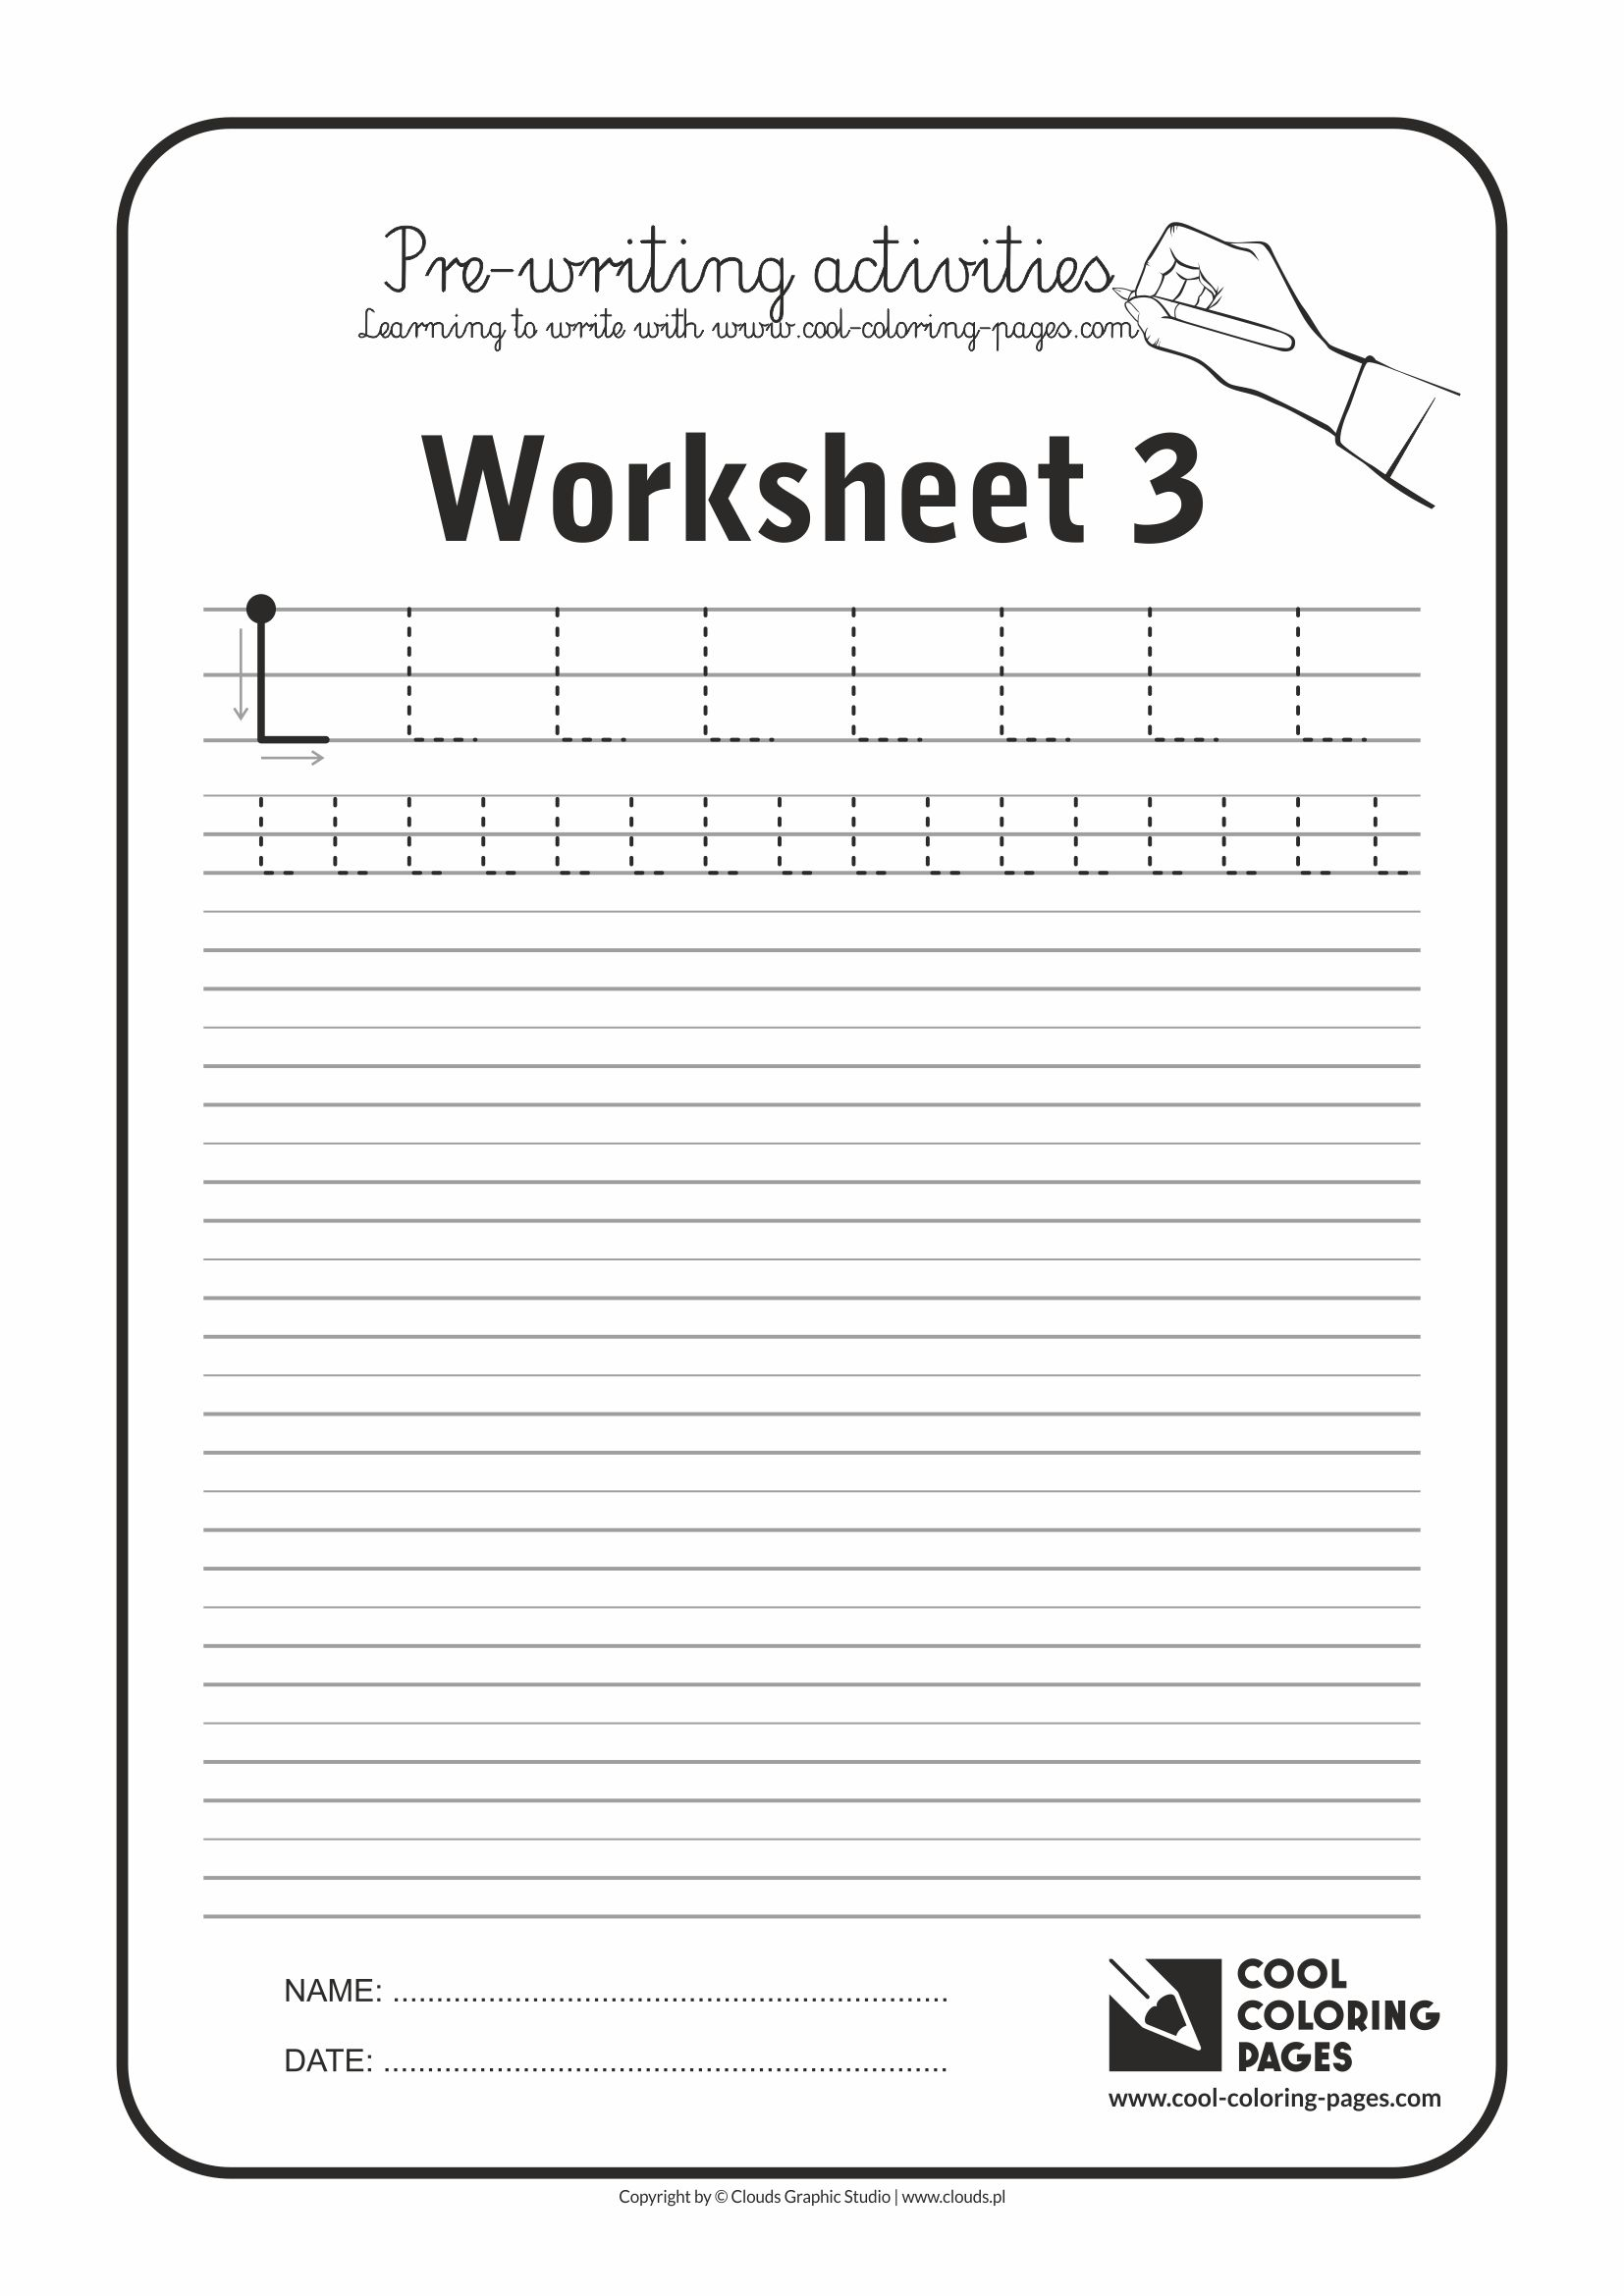 Cool Coloring Pages / Pre-writing activities / Worksheet no.3